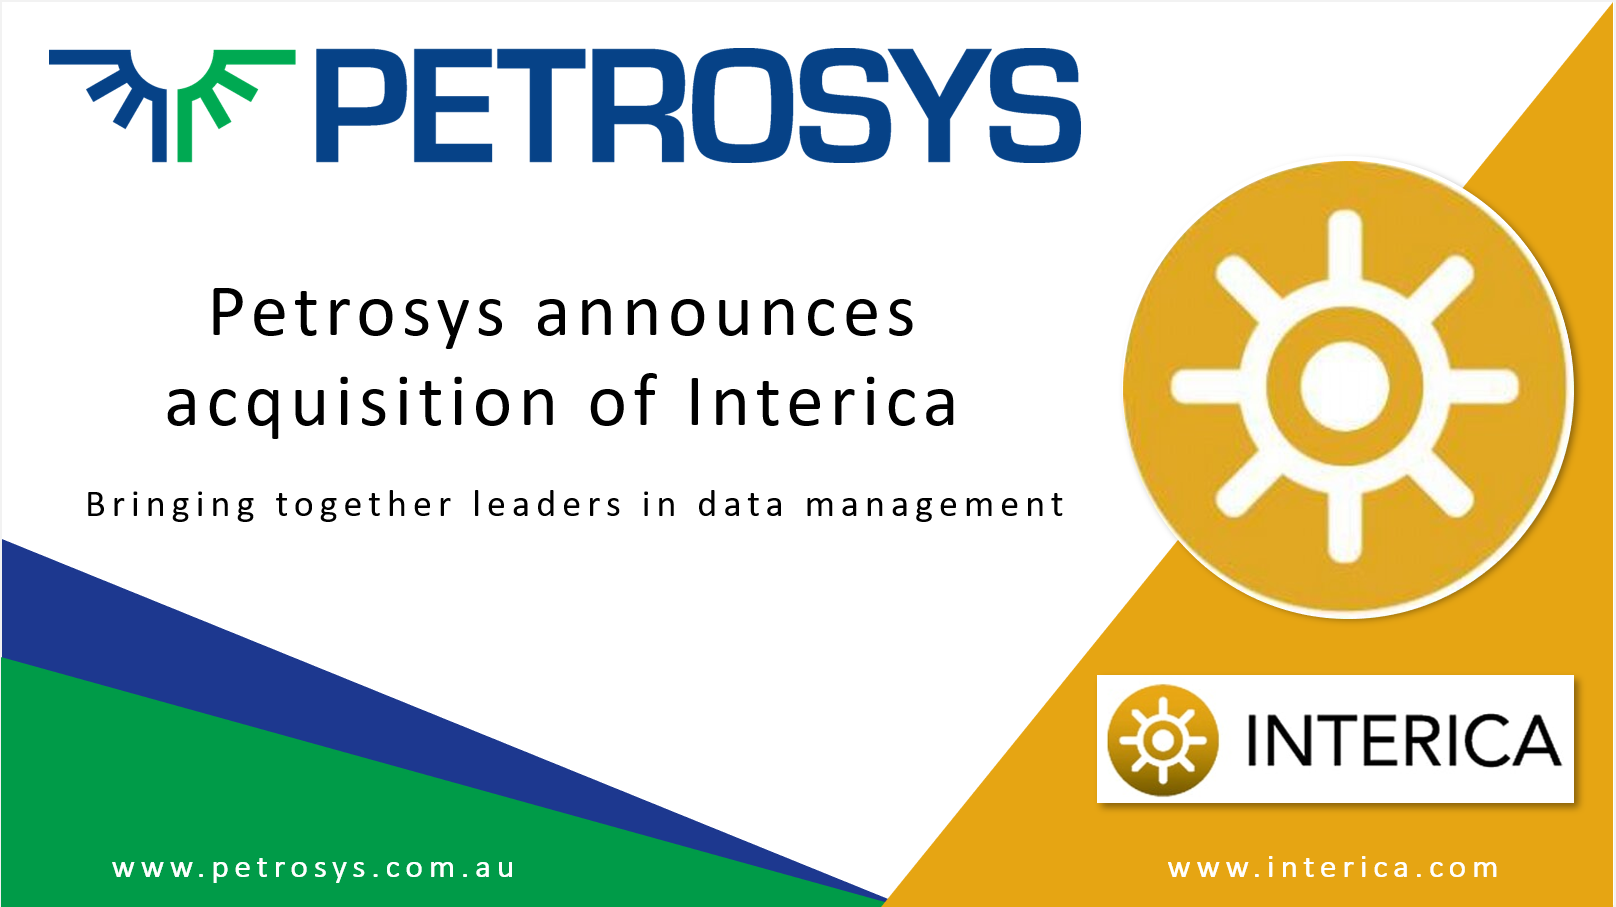 Petrosys announces acquisition of Interica